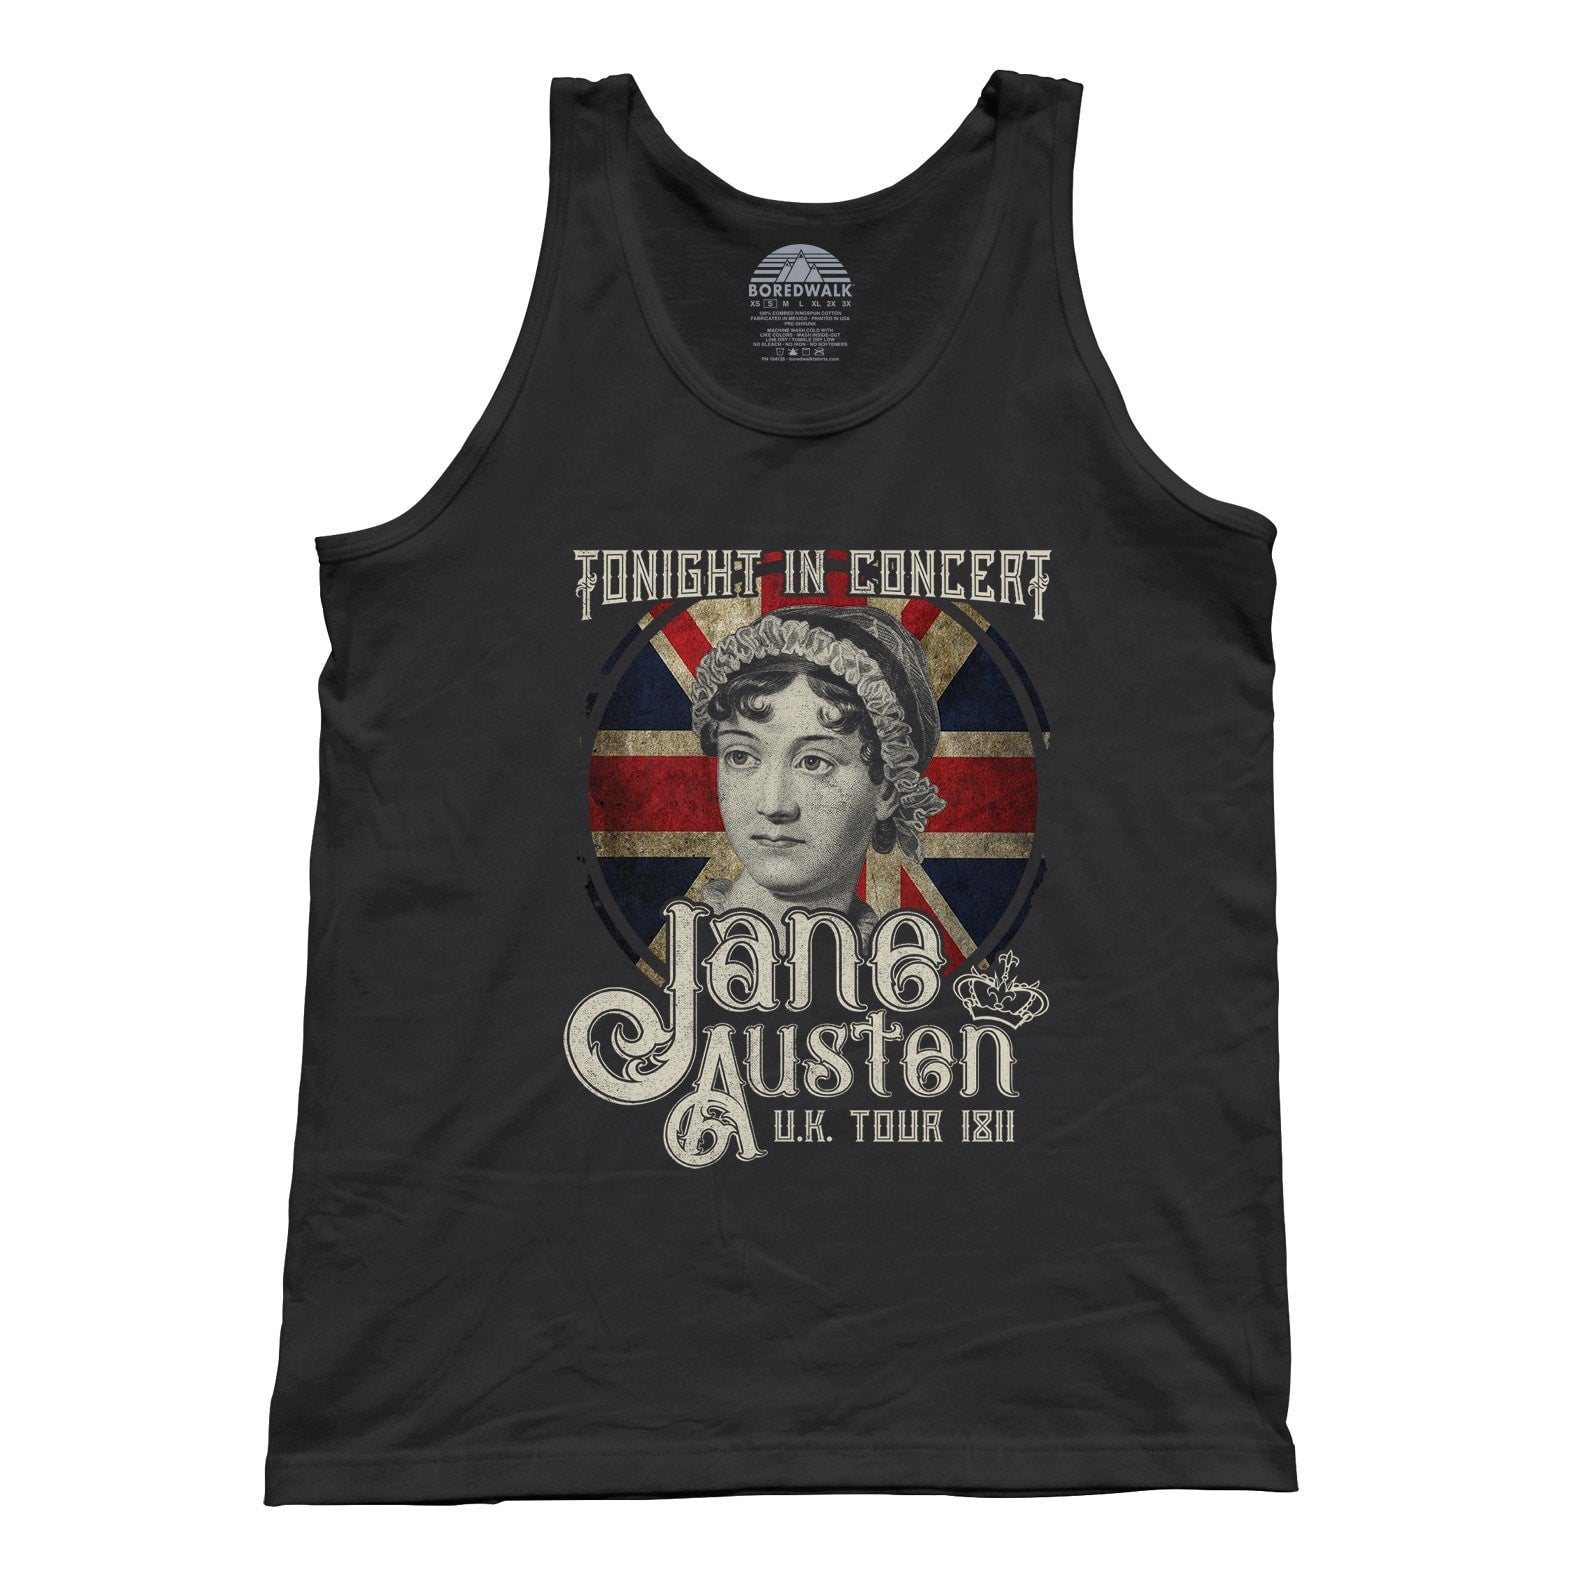 Unisex Jane Austen Rock and Roll UK Tour Tank Top